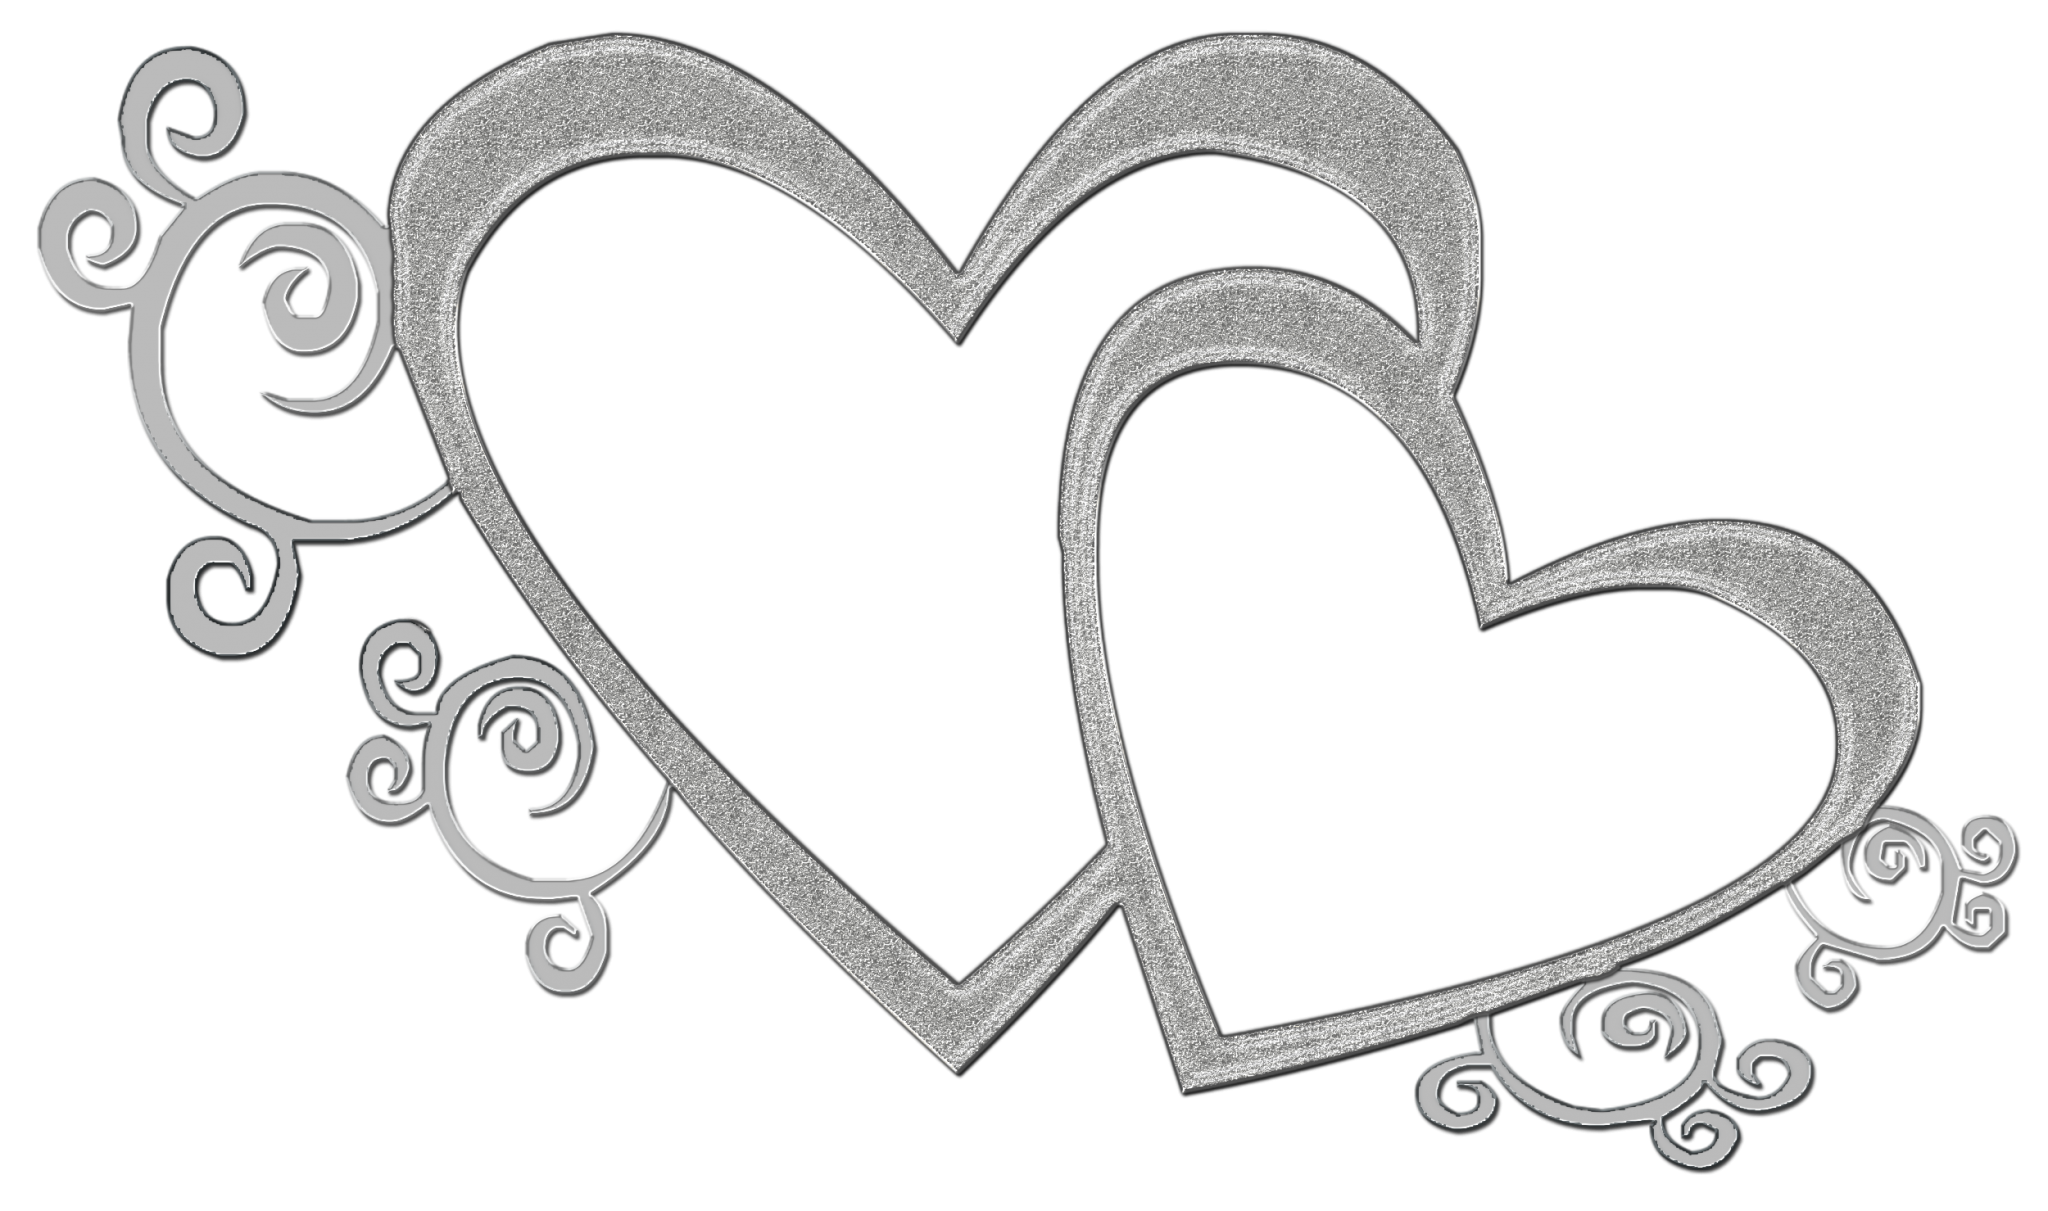 Hd widescreen for desktop. Drawing wallpapers heart svg black and white